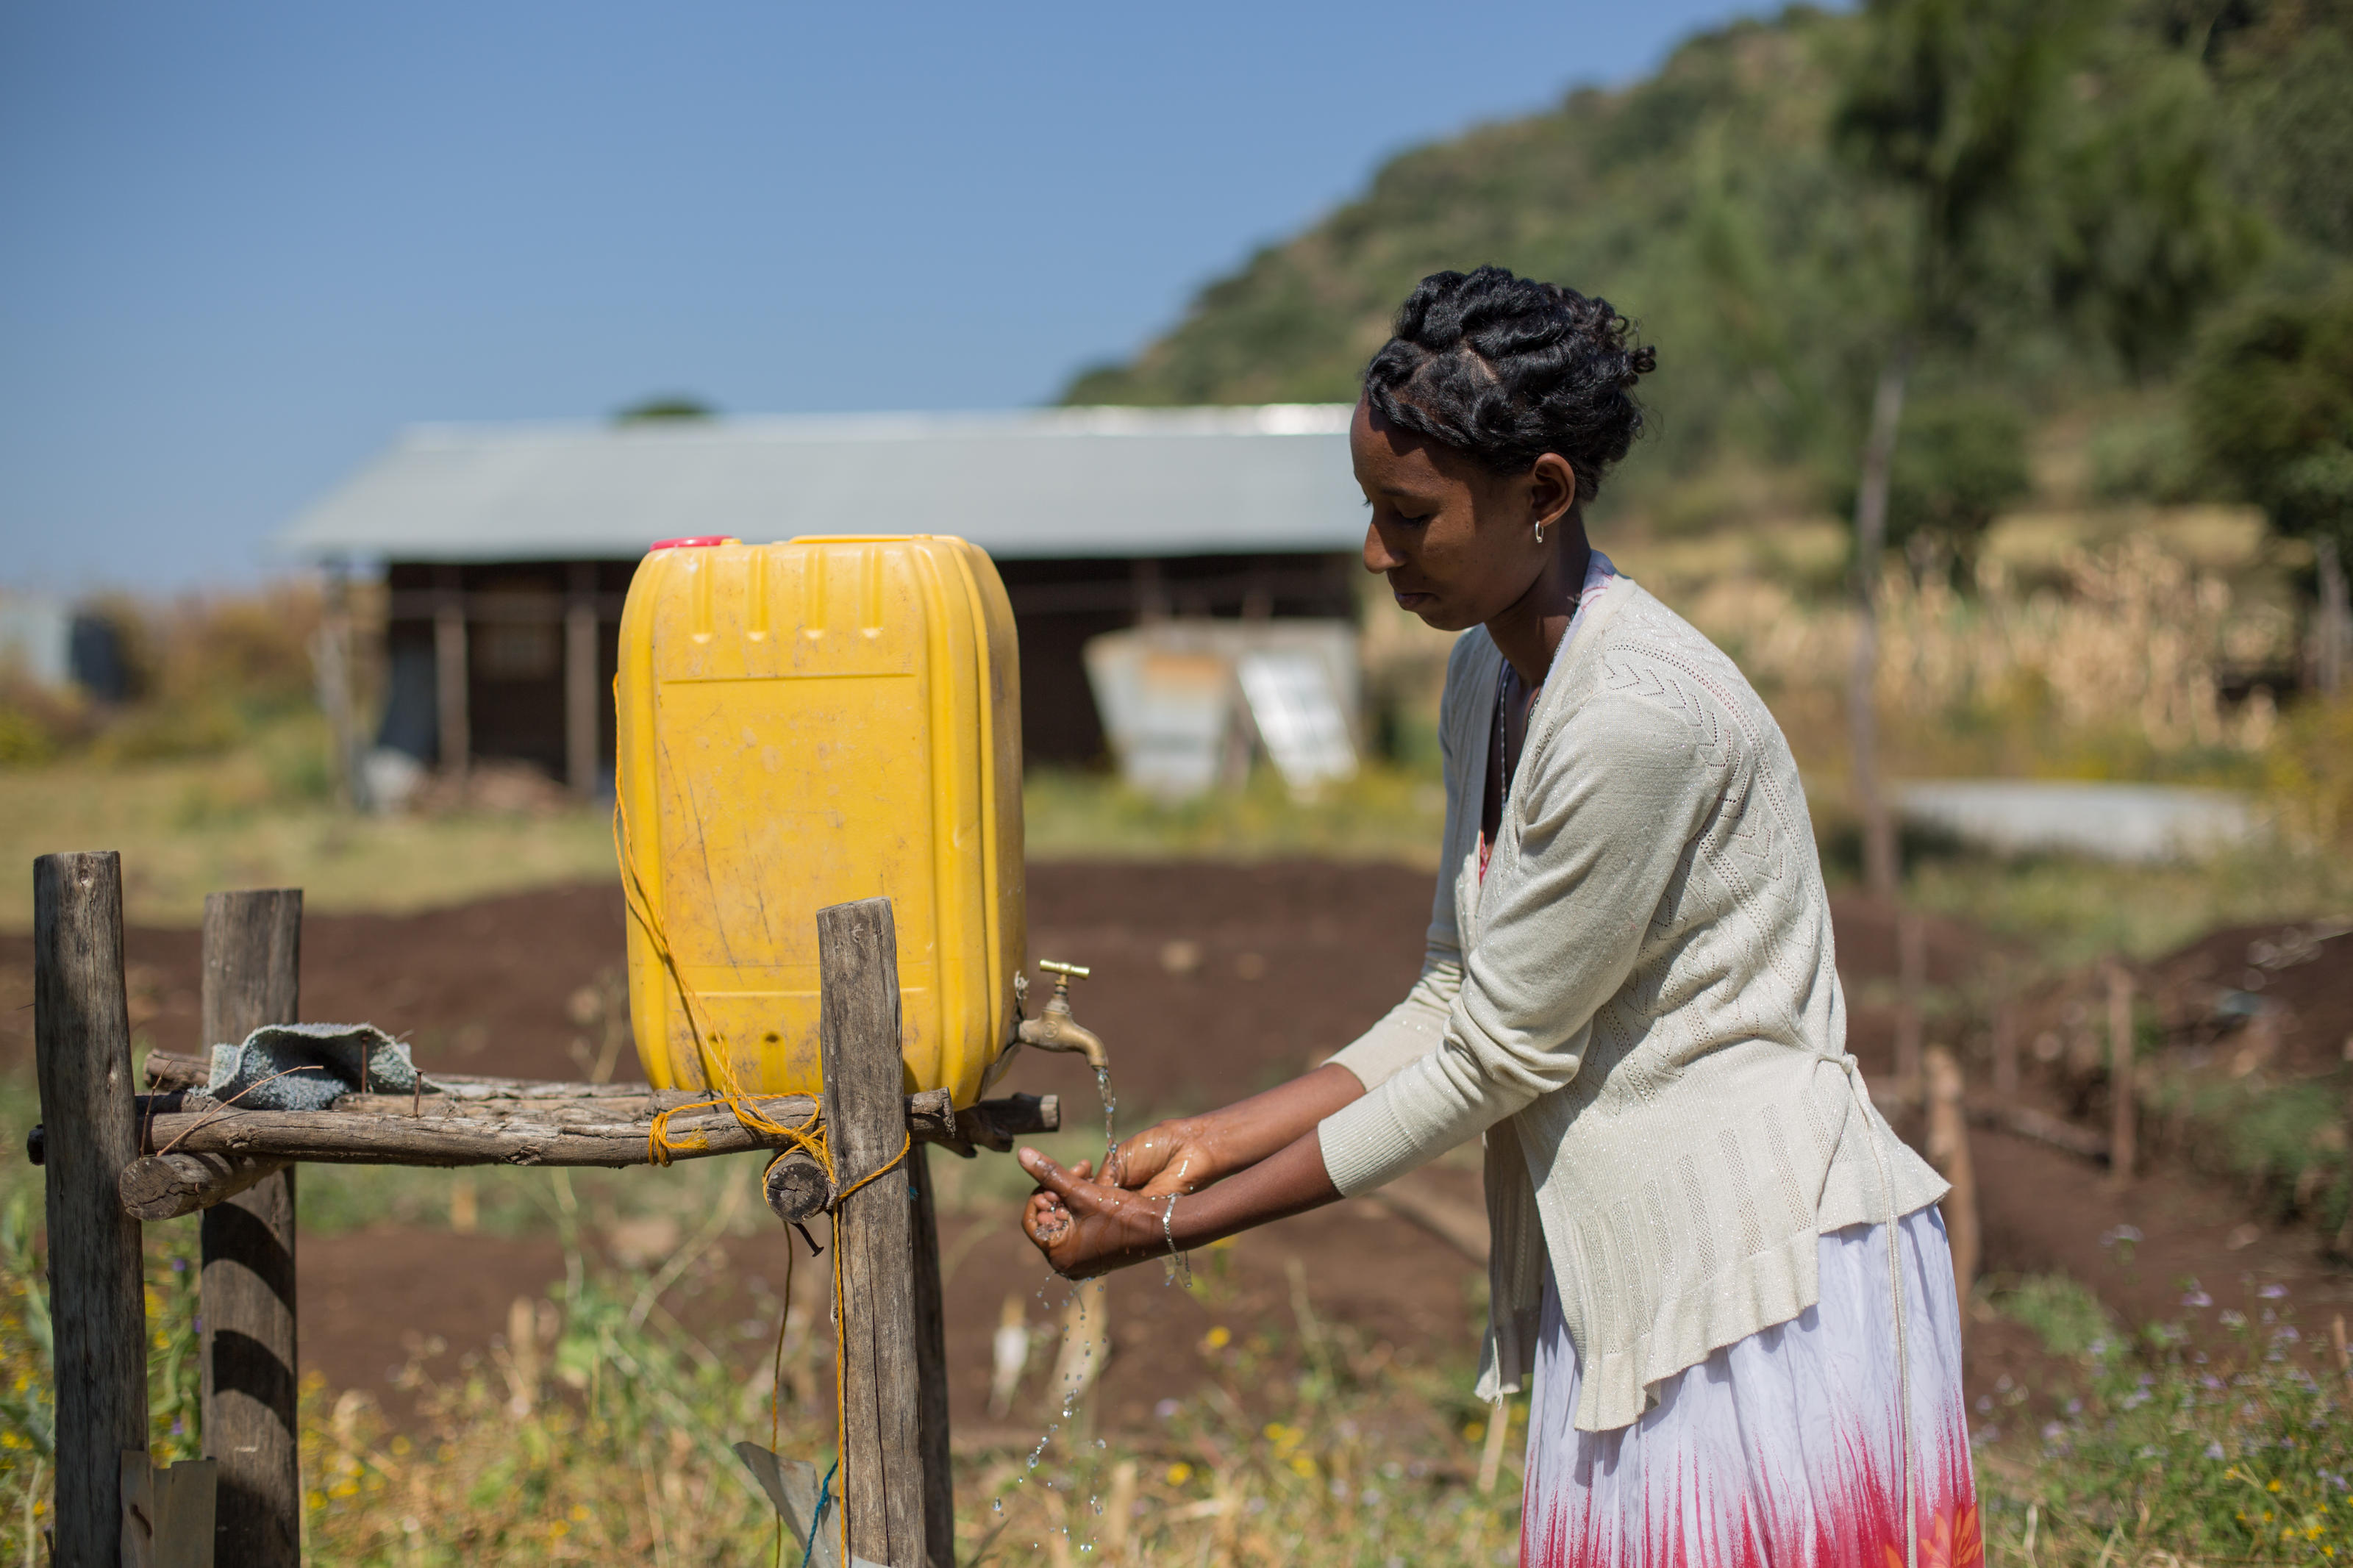 Yehasab Ayenew, 24, a cleaner, washing her hands using the 20 litres of water set aside for hand washing at Yiraber Health Centre, Jabi Tehnan, West Gojjam, Ethiopia, December 2018.